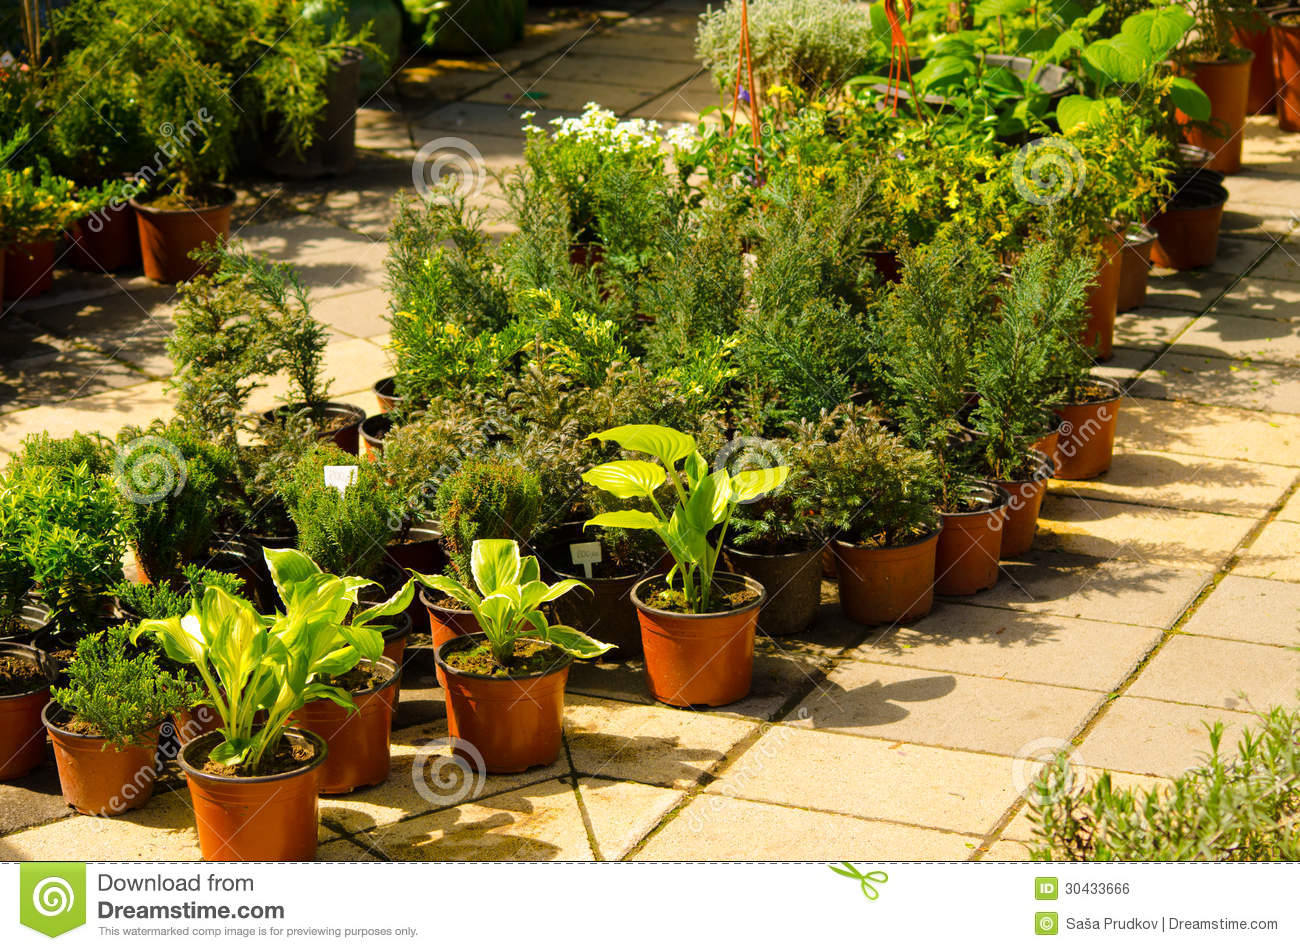 Home Plants For Sale Royalty Free Stock Image Image